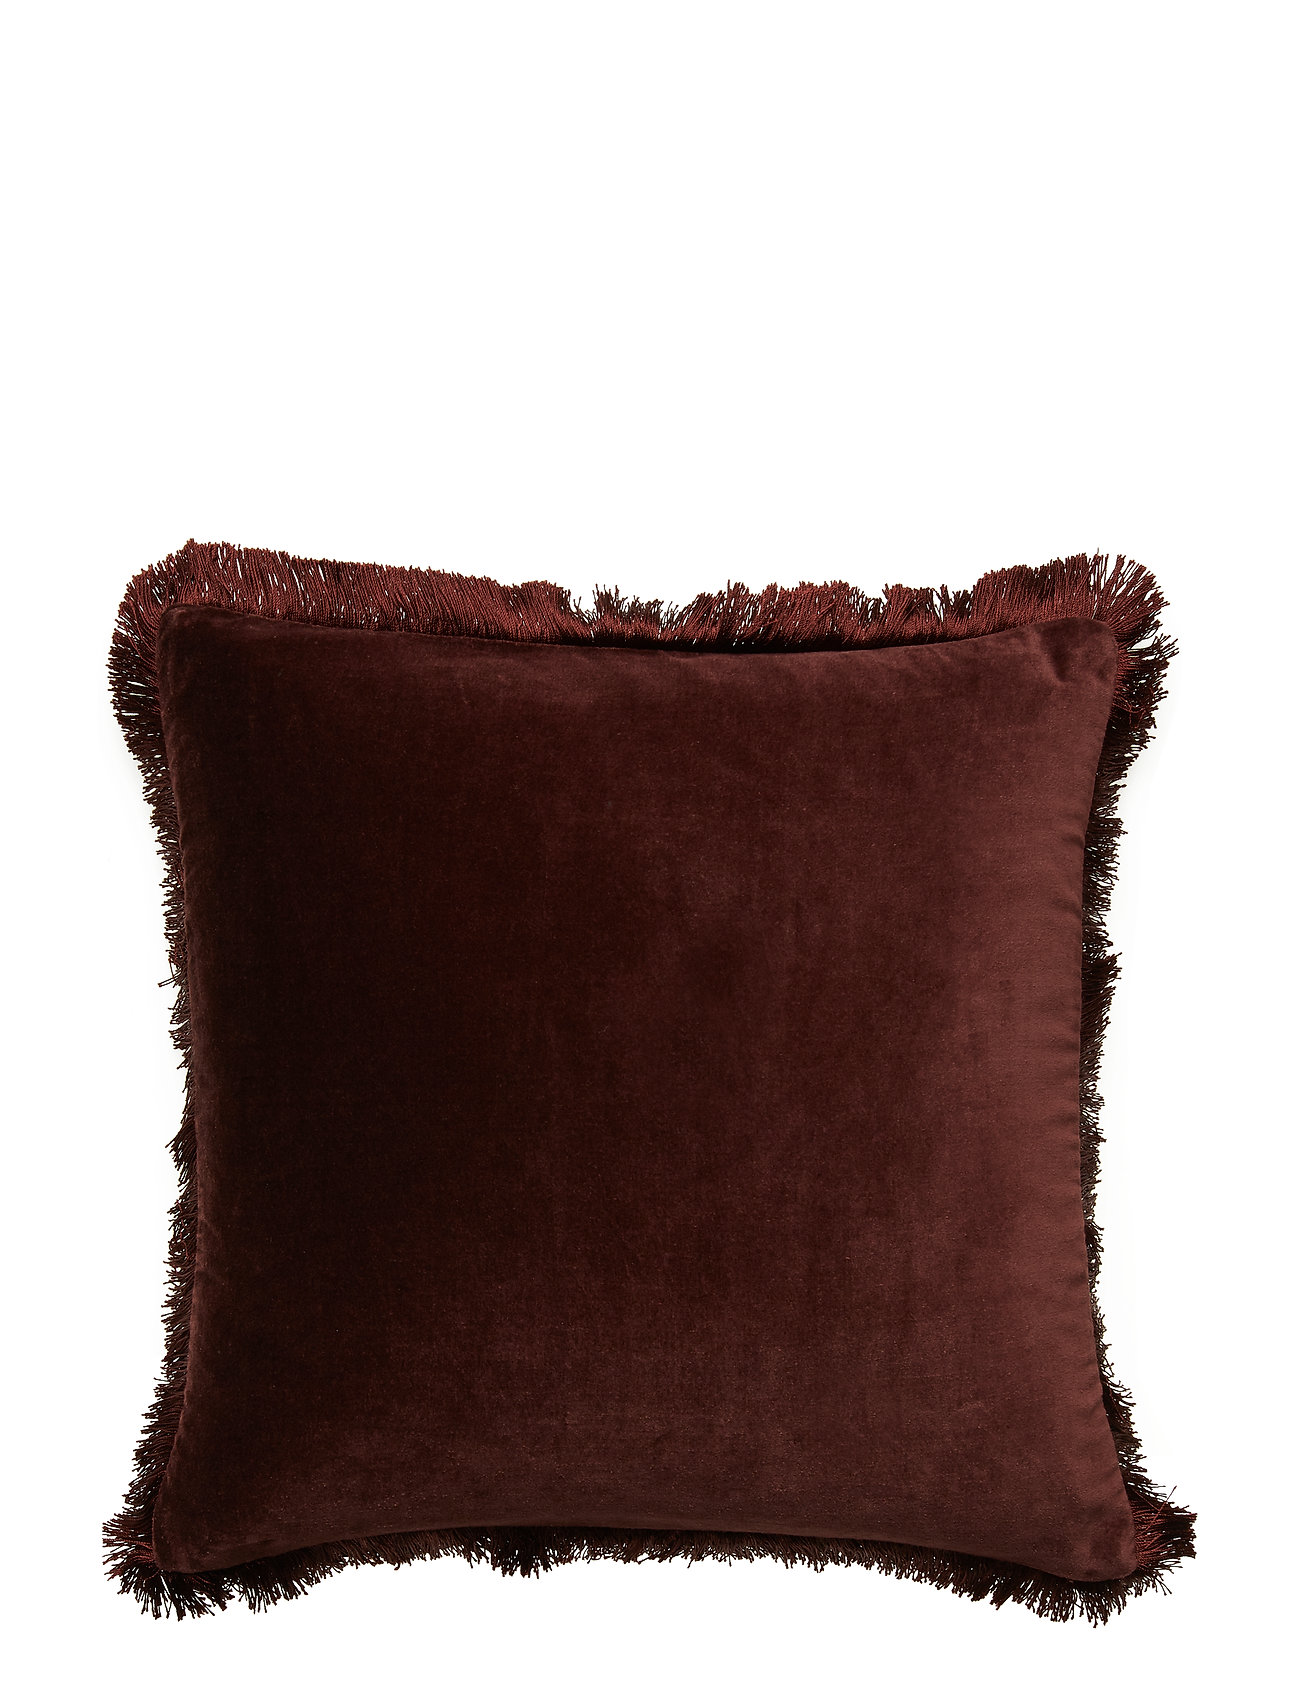 DAY Home Day Classic Velvet Cushion Cover Deep Wine Fringes - DEEP WINE